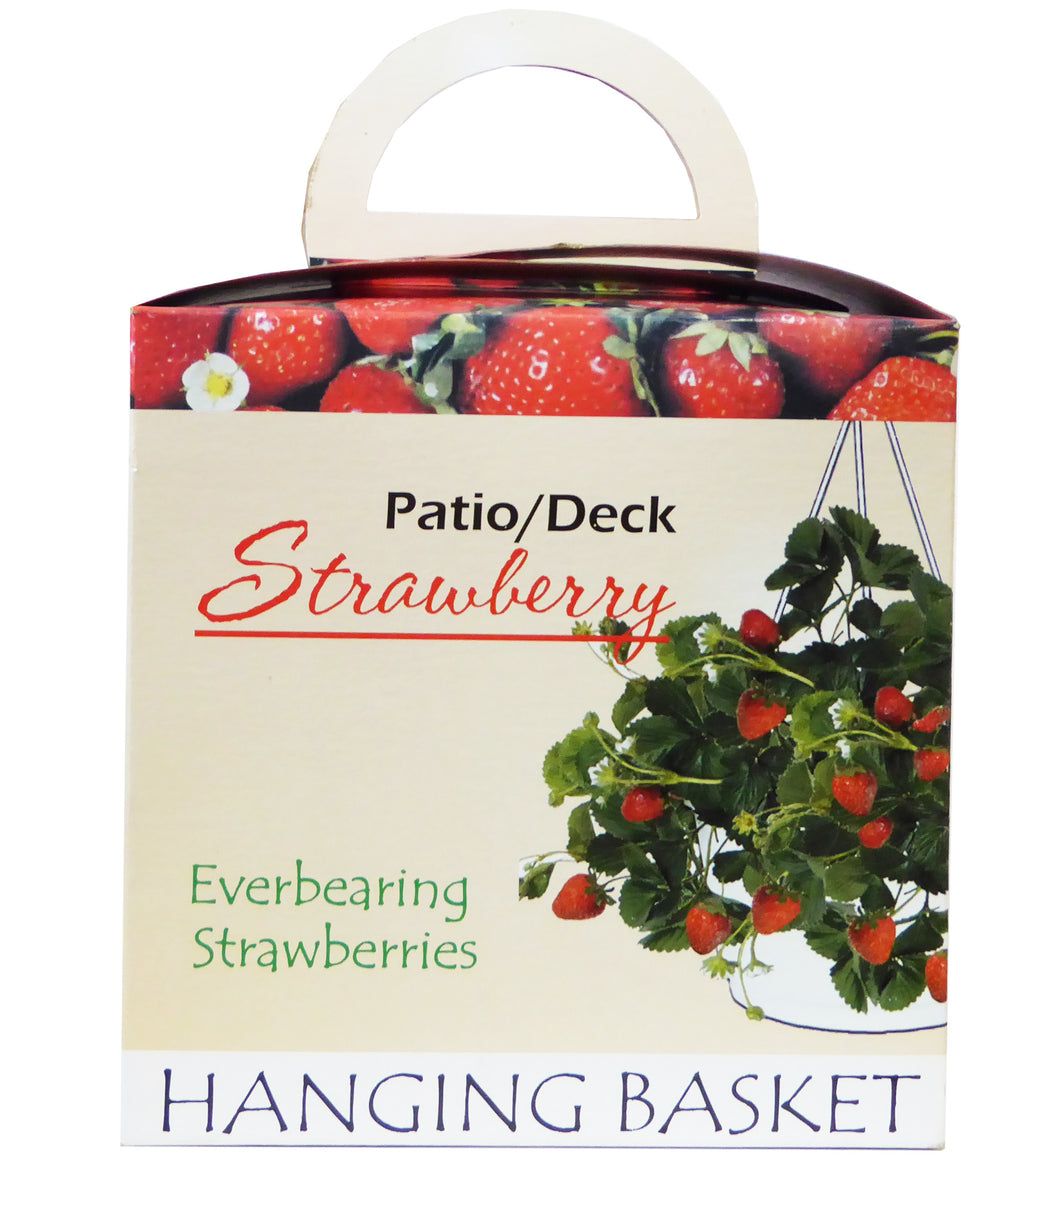 DECK & PATIO PLANT GROW KIT FOR STRAWBERRY with BARE ROOT PLANTS by Triumph